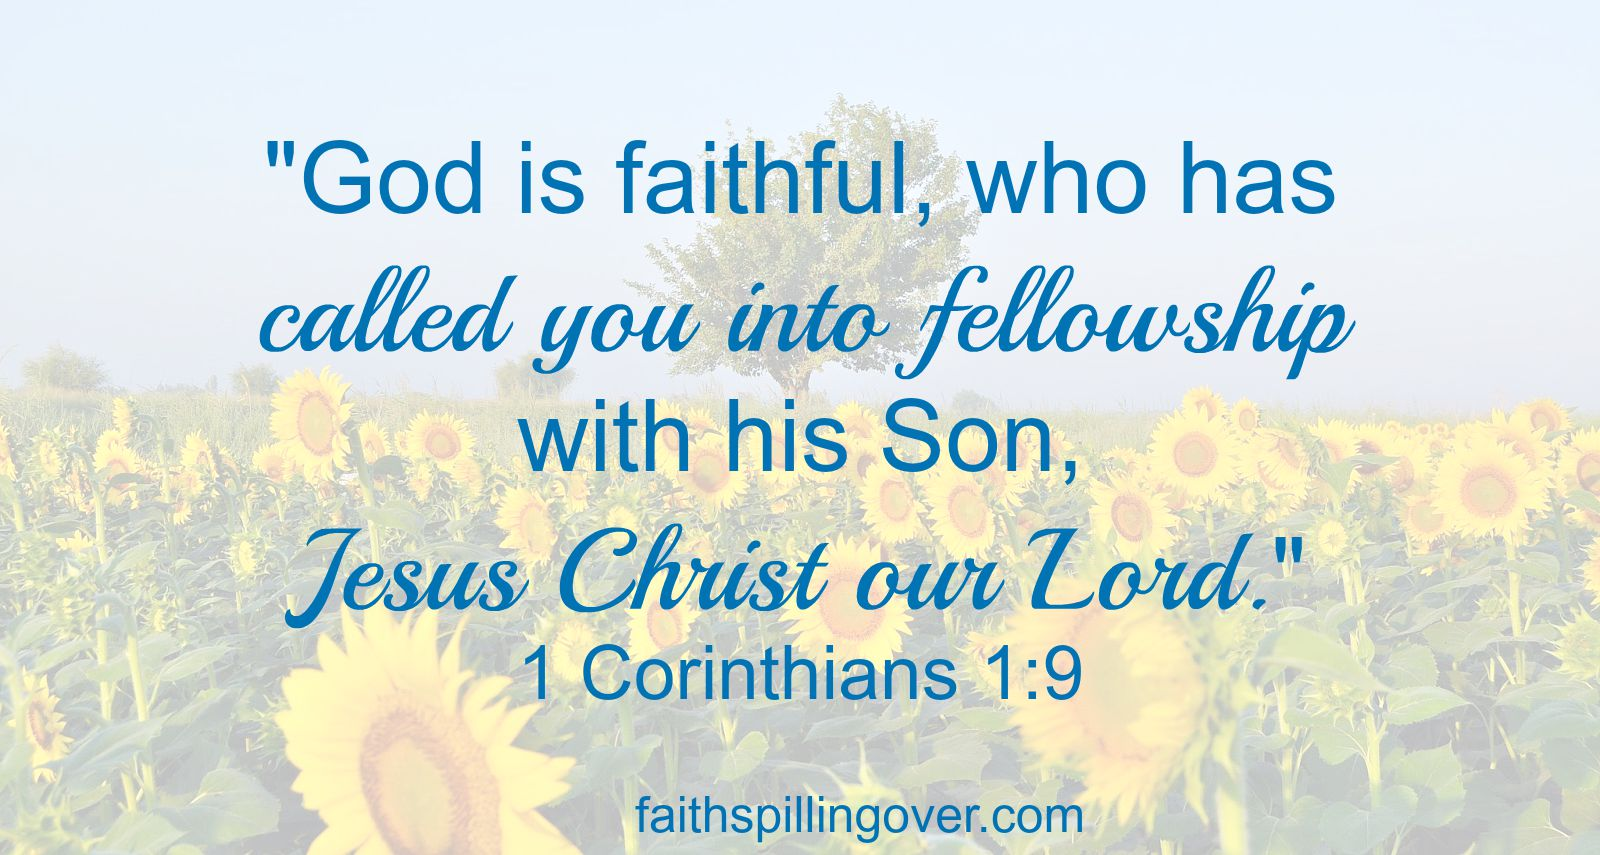 1 Corinthians 1 9 fellowship scripture